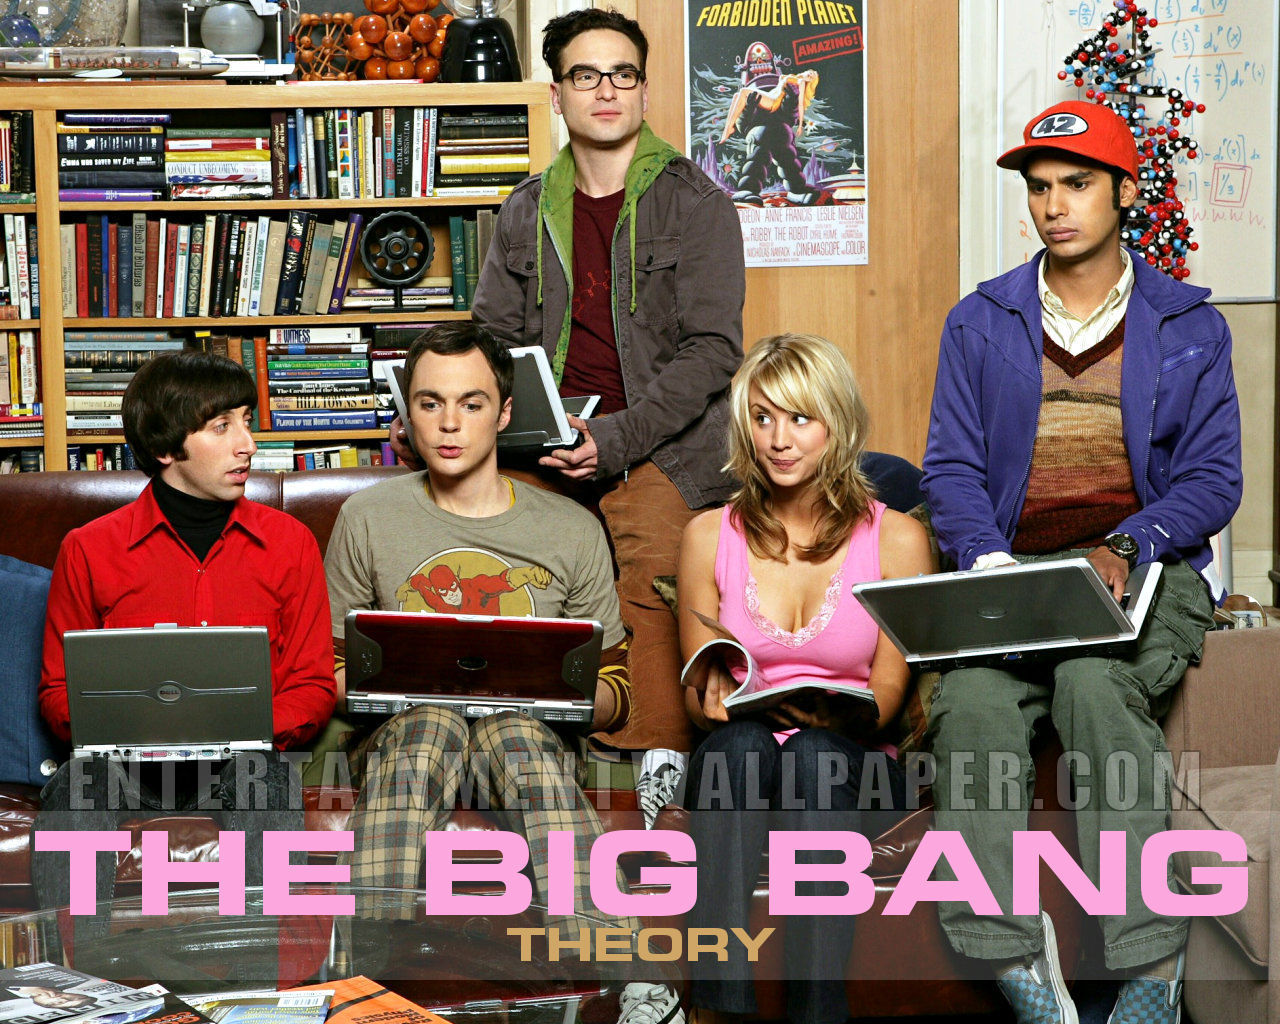 TBBT wallpaper  The Big Bang Theory Wallpaper 15234813  Fanpop